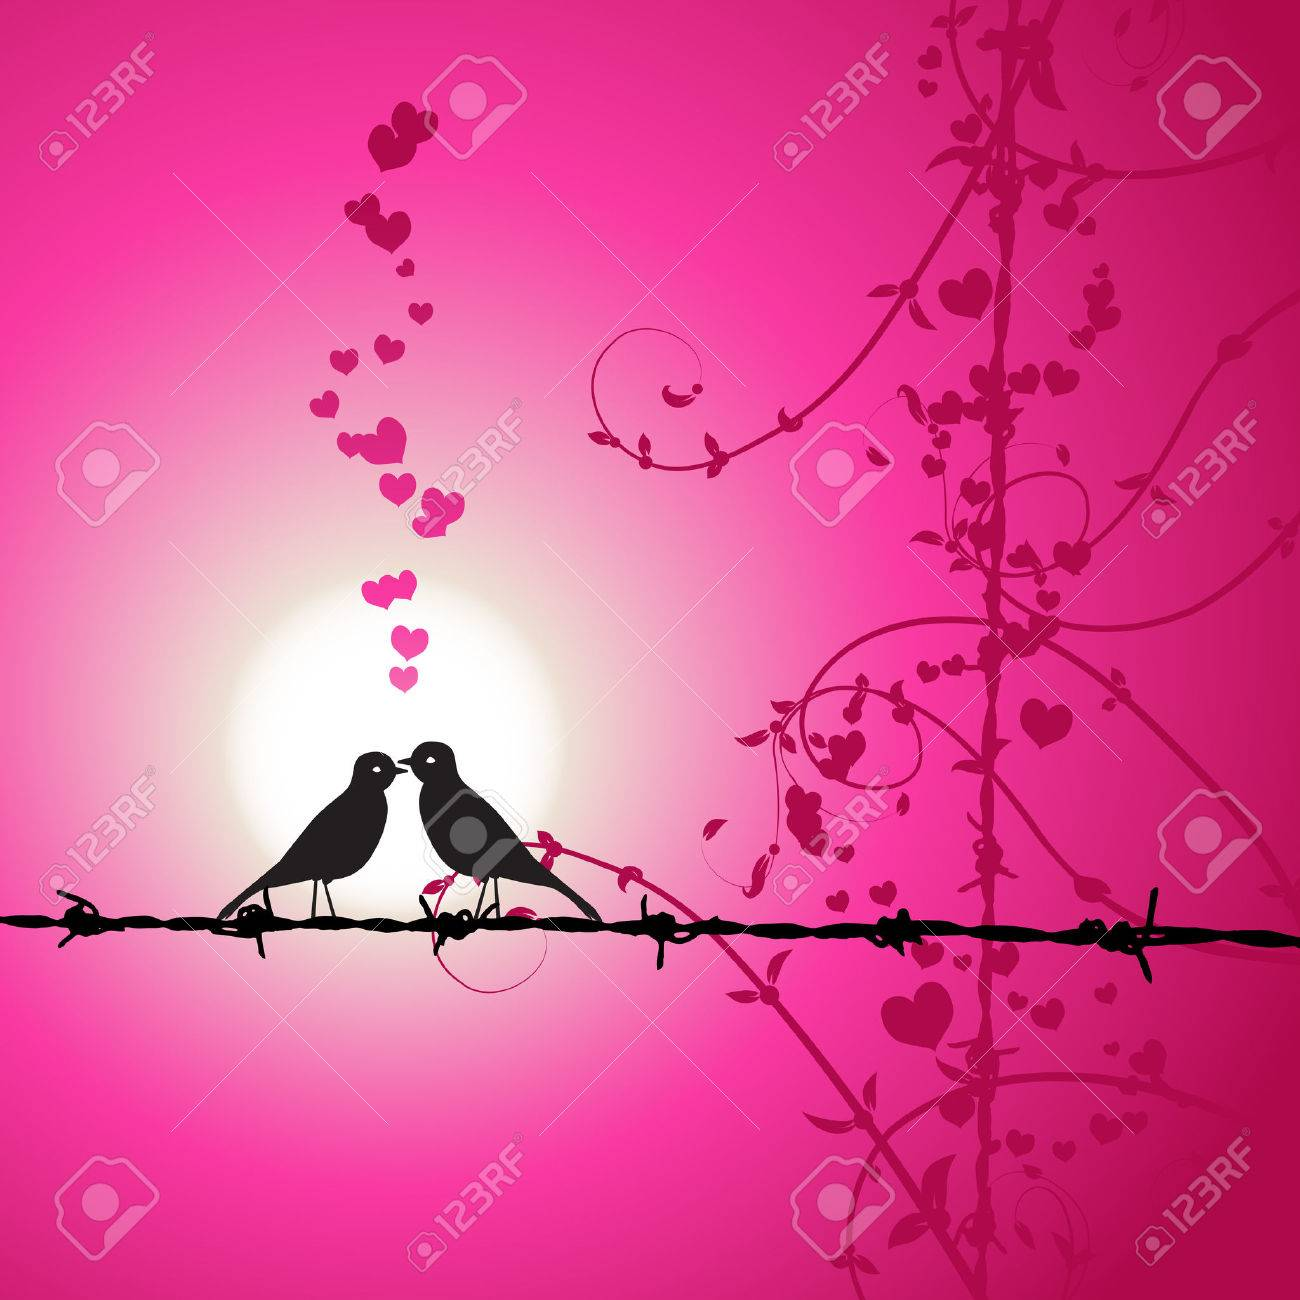 Love, birds kissing on branch Stock Vector - 4412442